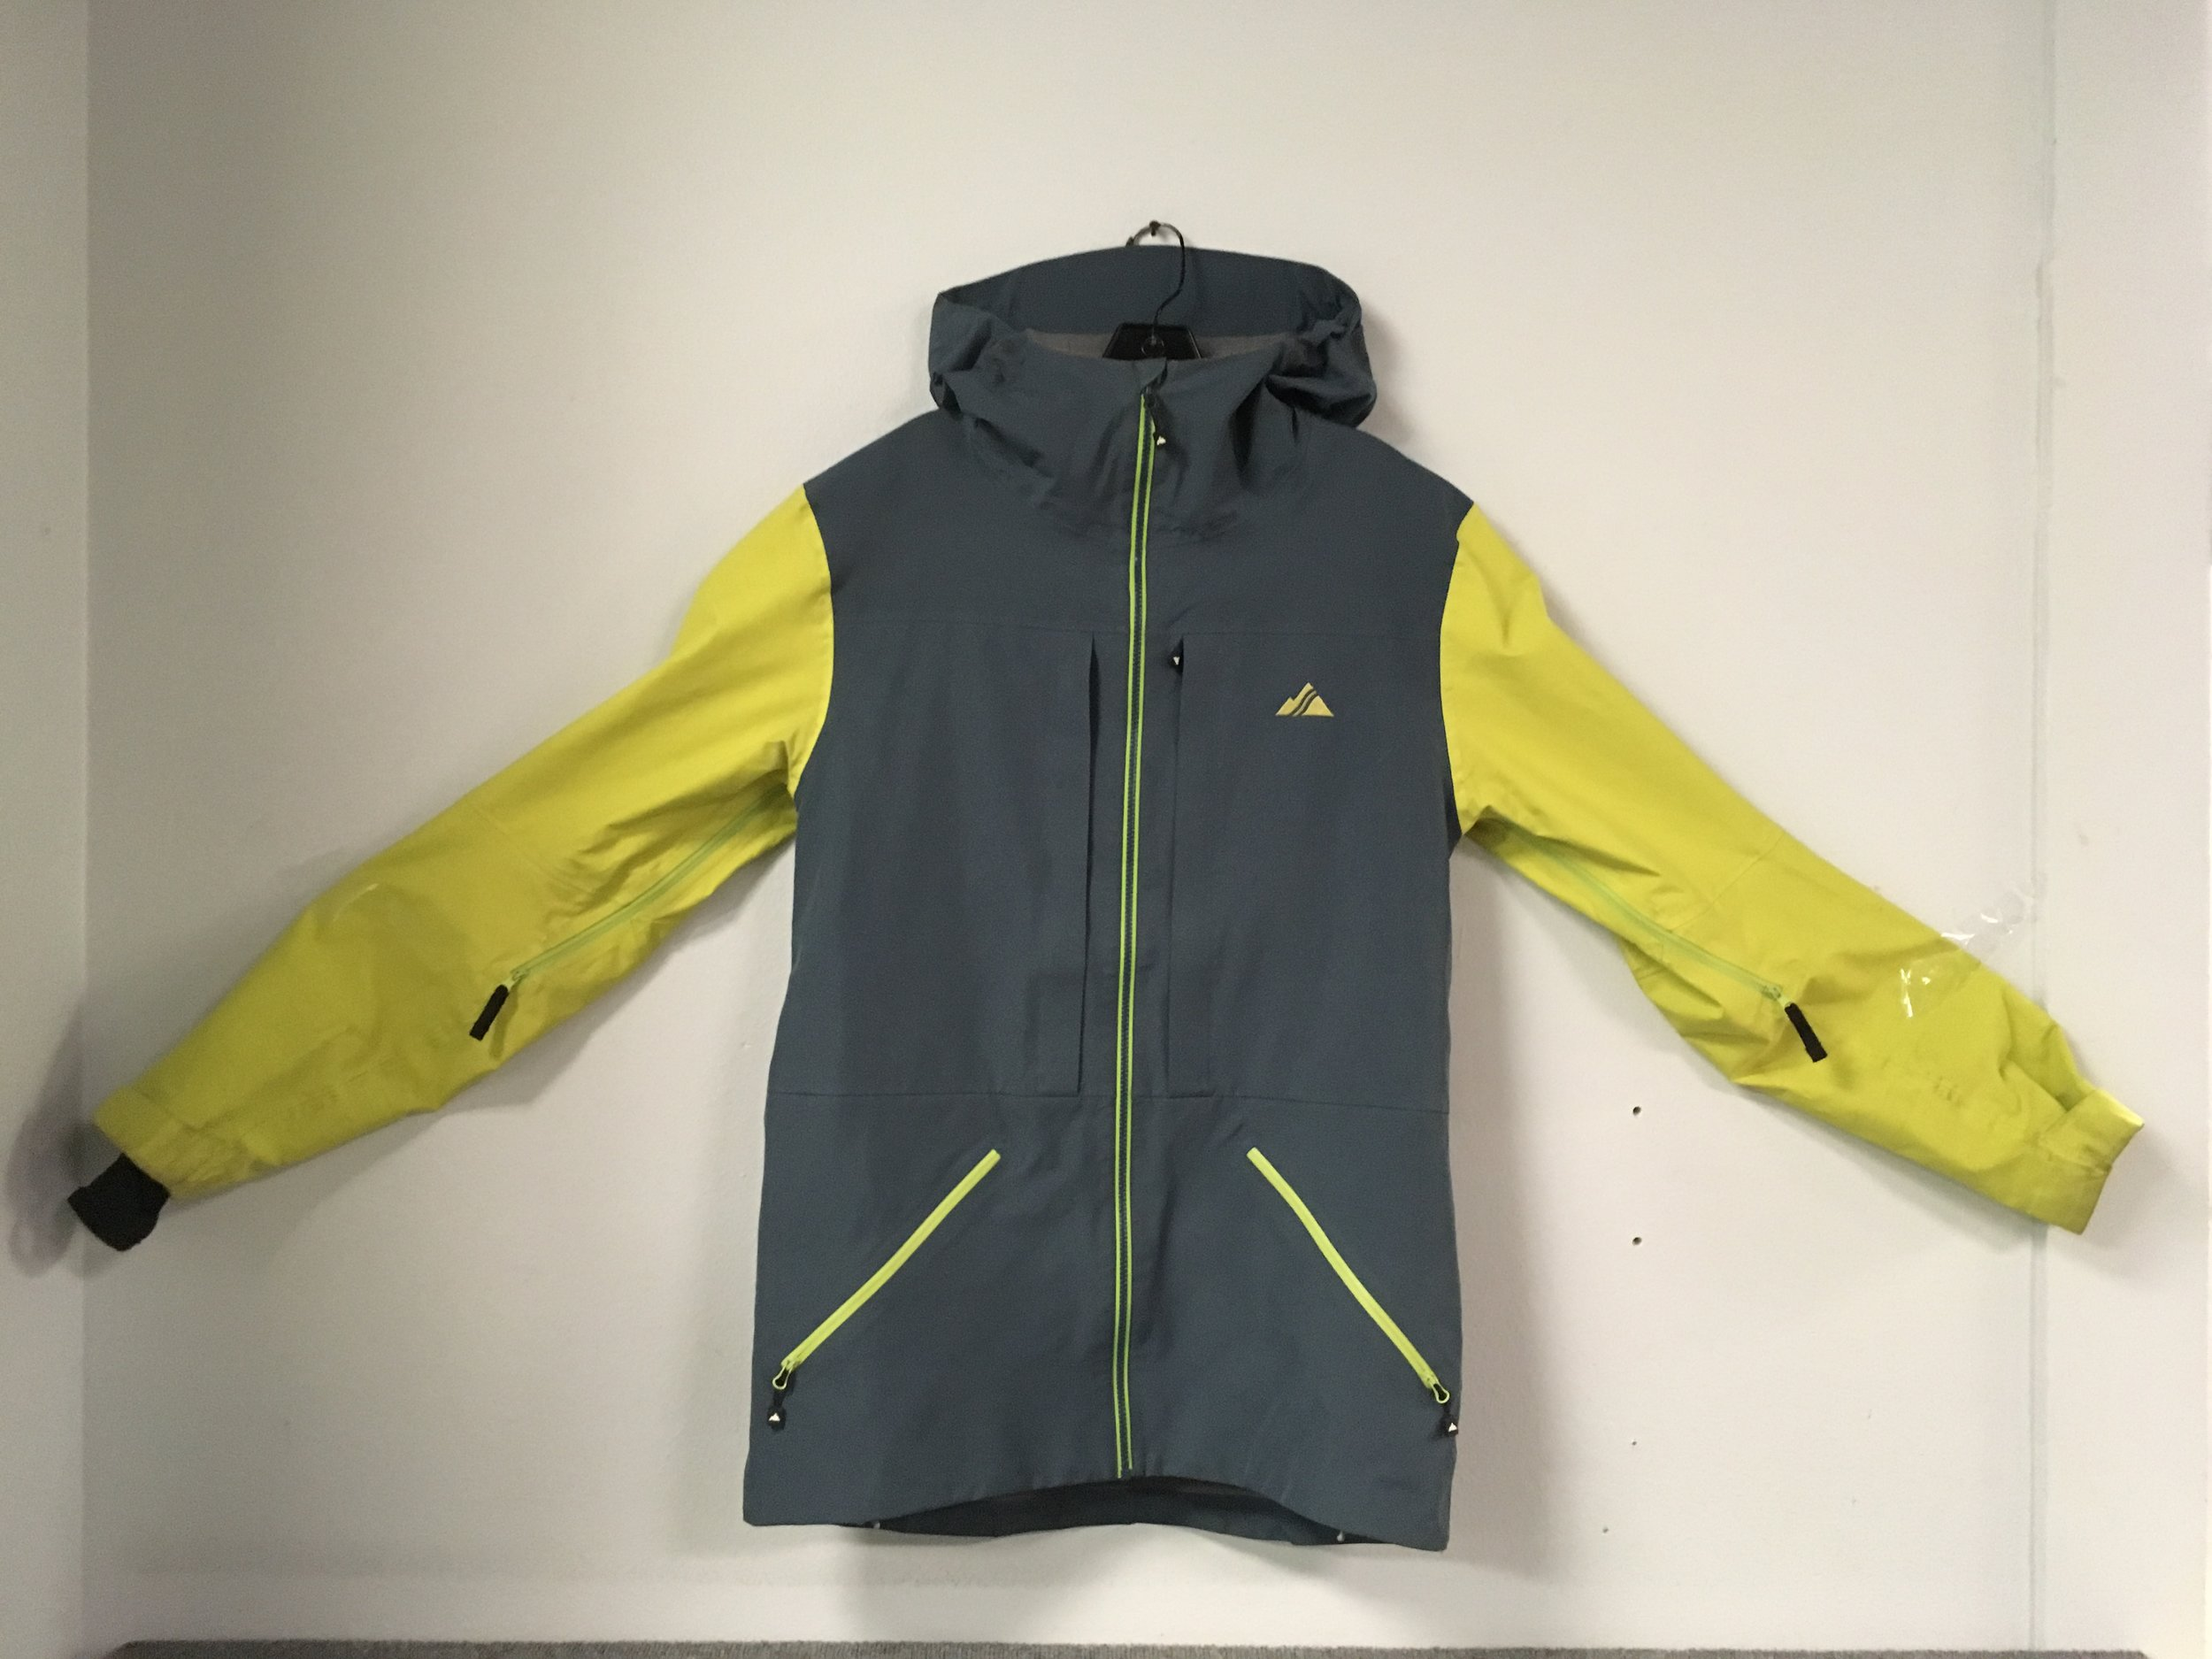 Keep it dry with Strafe's Nomad jacket featuring eVent waterproofing fabric. A $500 jacket that we have listed at $149! The size is a men's medium.